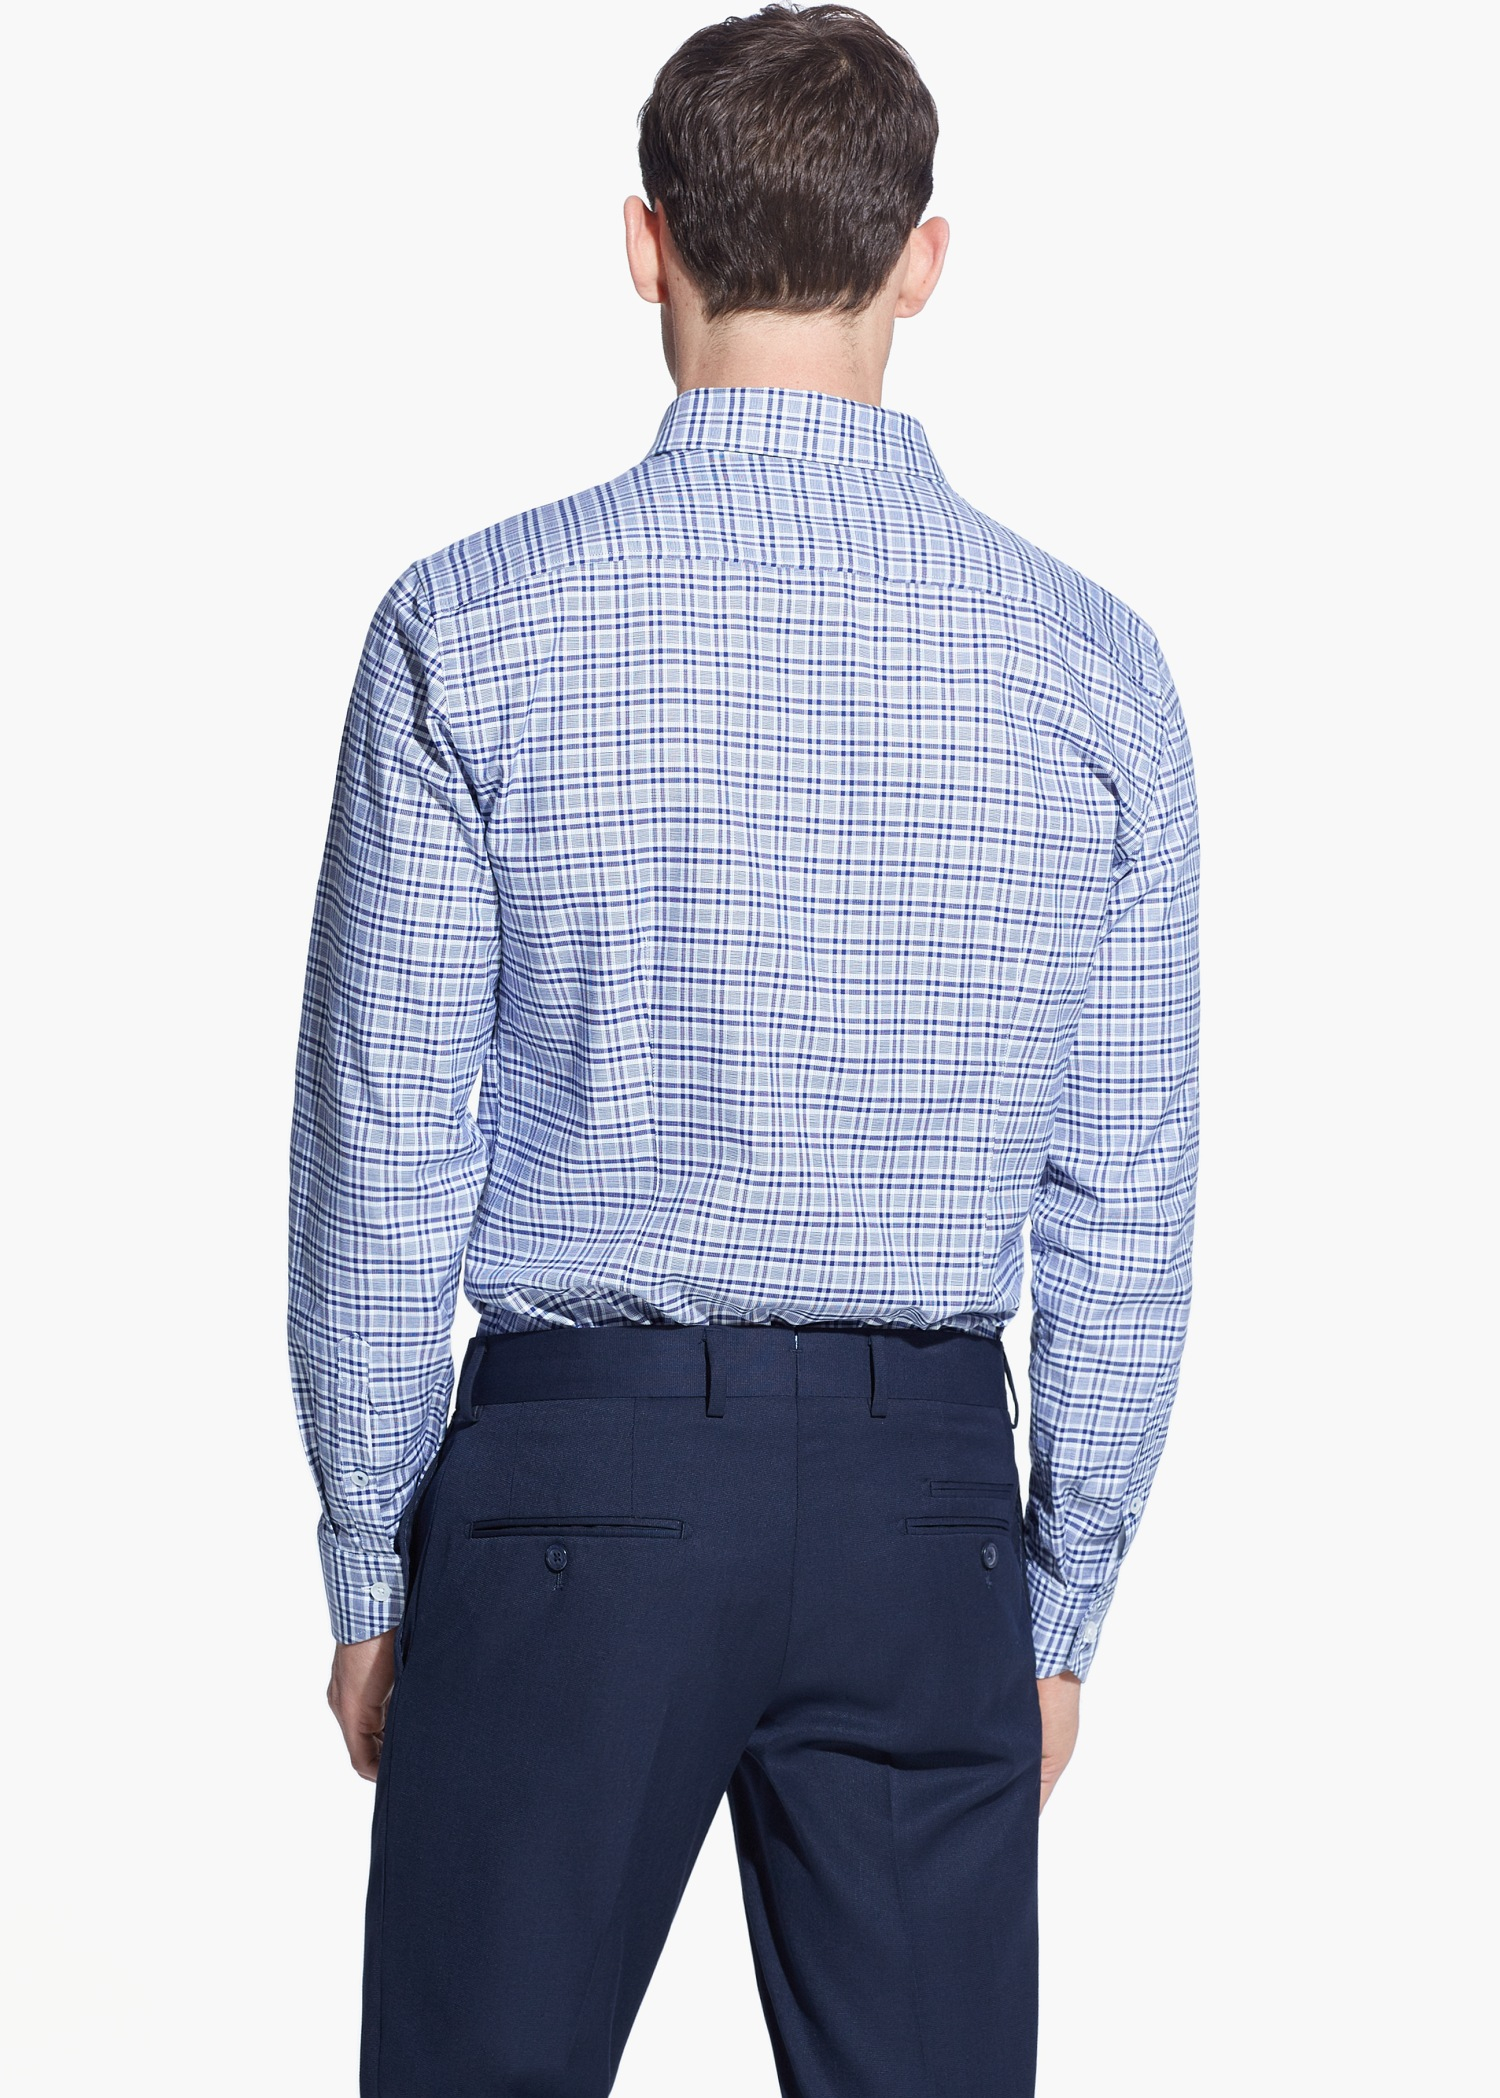 Lyst mango slim fit tailored gingham check shirt in blue for Slim fit gingham check shirt